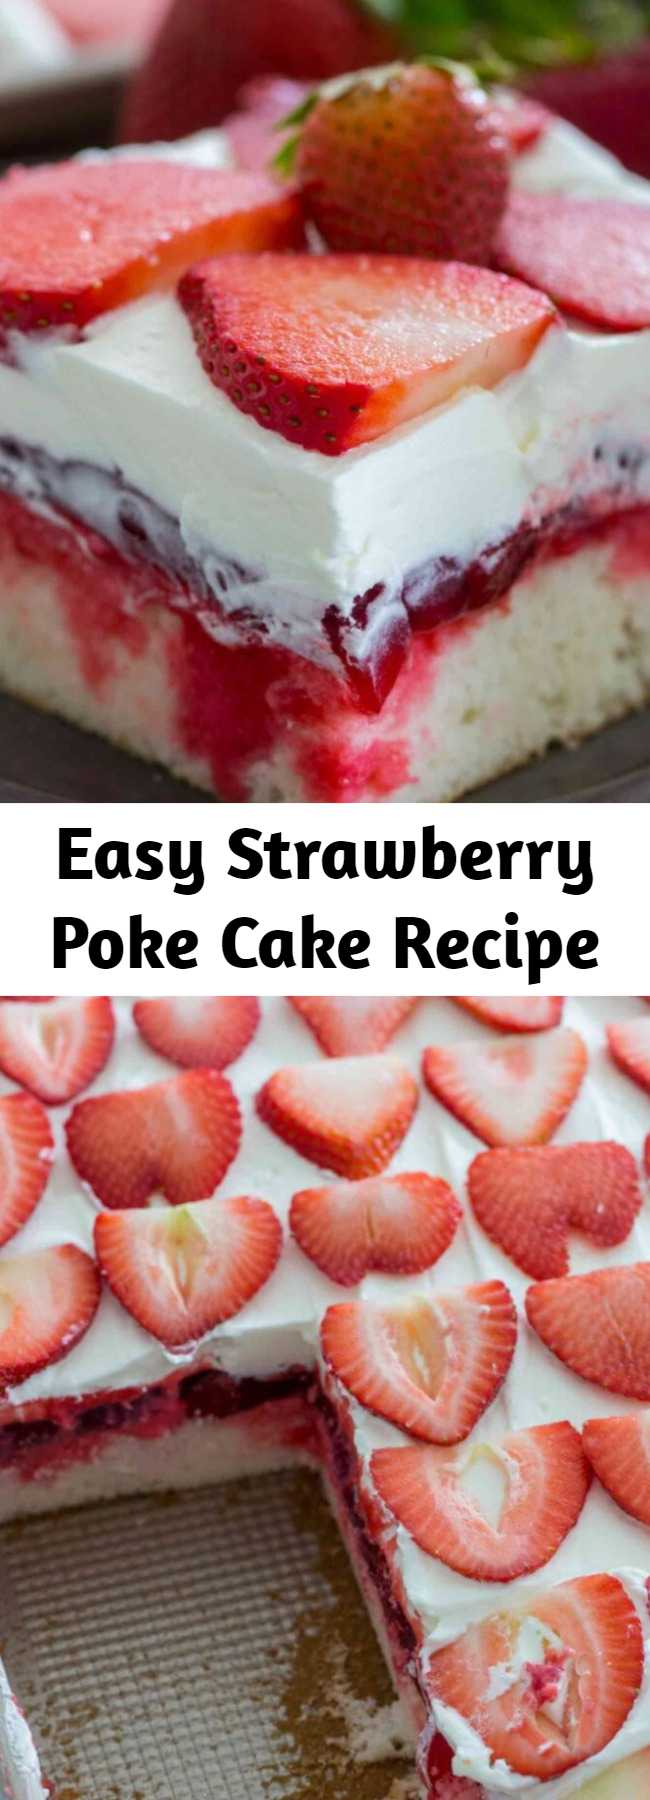 Easy Strawberry Poke Cake Recipe - Strawberry Poke Cake is made with white cake, soaked with a mixture of white chocolate strawberry sauce, topped with strawberry pie filling and creamy whipped cream. #pokecake #strawberry #strawberrycake #dessertrecipes #desserts #cakerecipes #cake